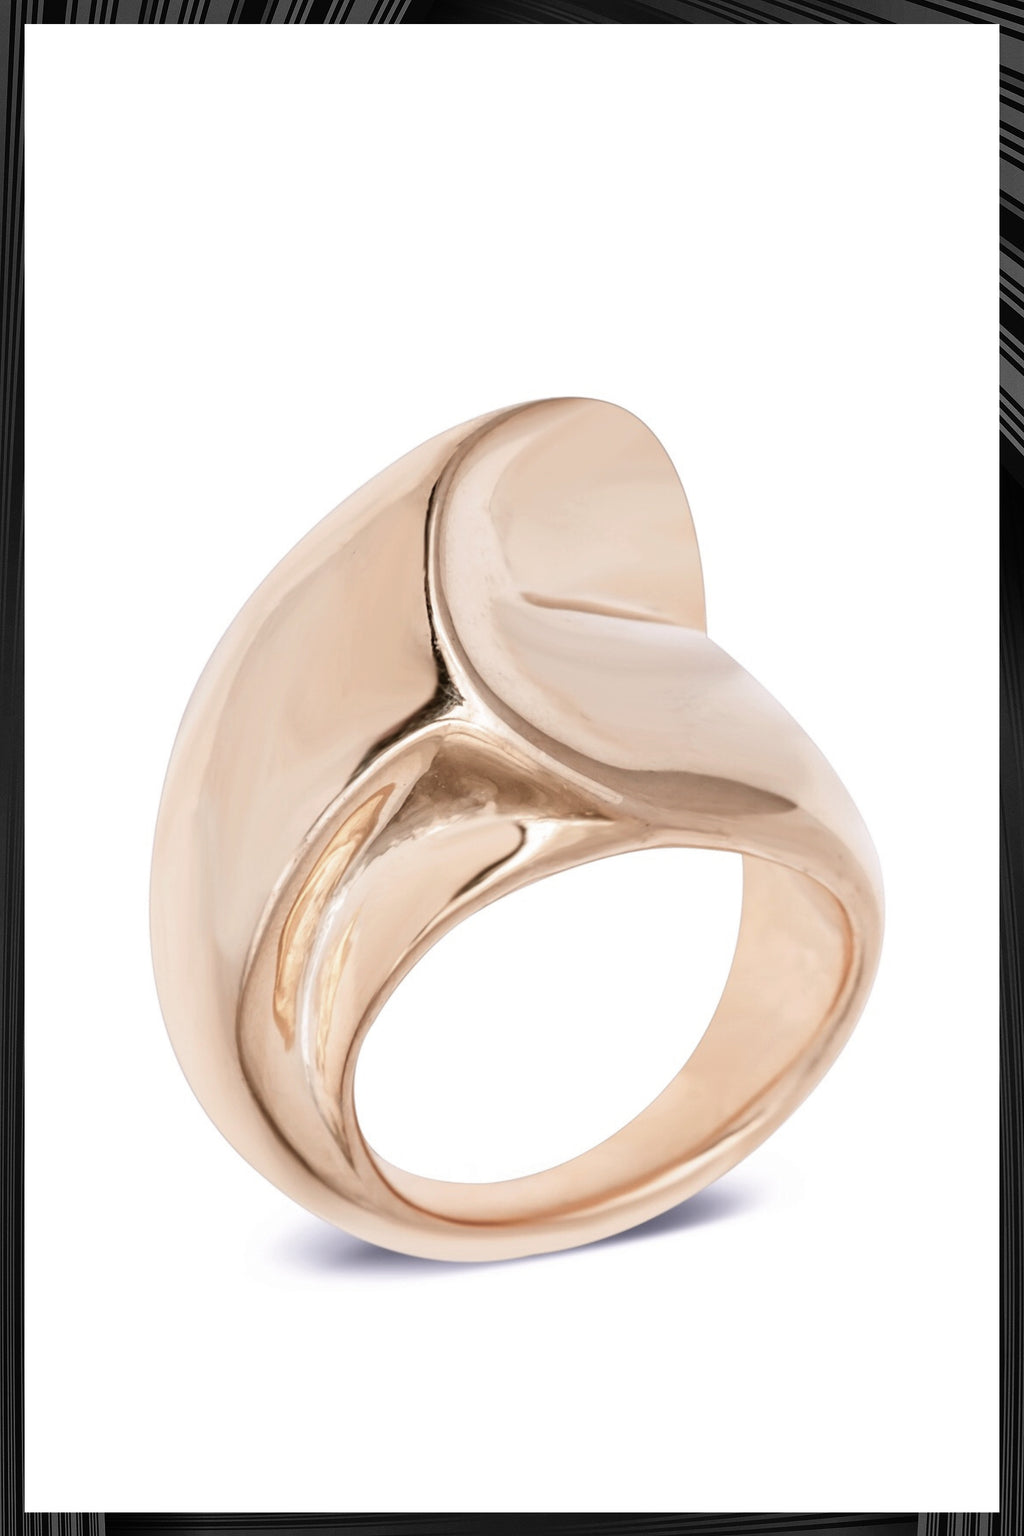 Perfect Wave Ring | Free Delivery - 2-3 Weeks Shipping